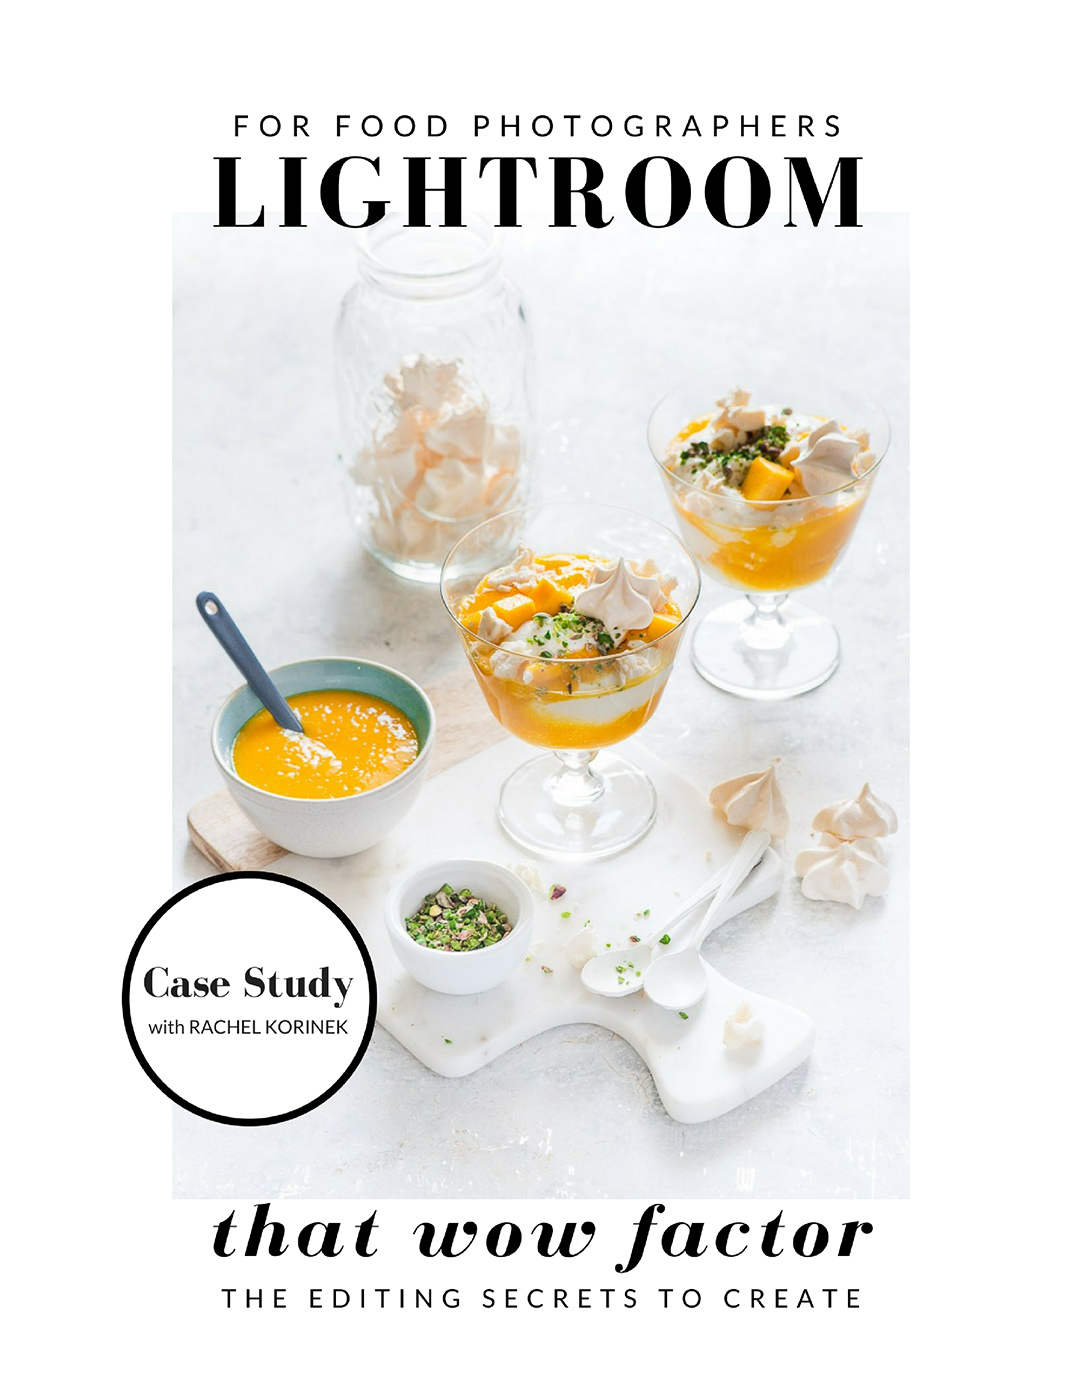 Lightroom for Food Photographers. How it will give you to confidence to edit for that wow factor you want in your photos.